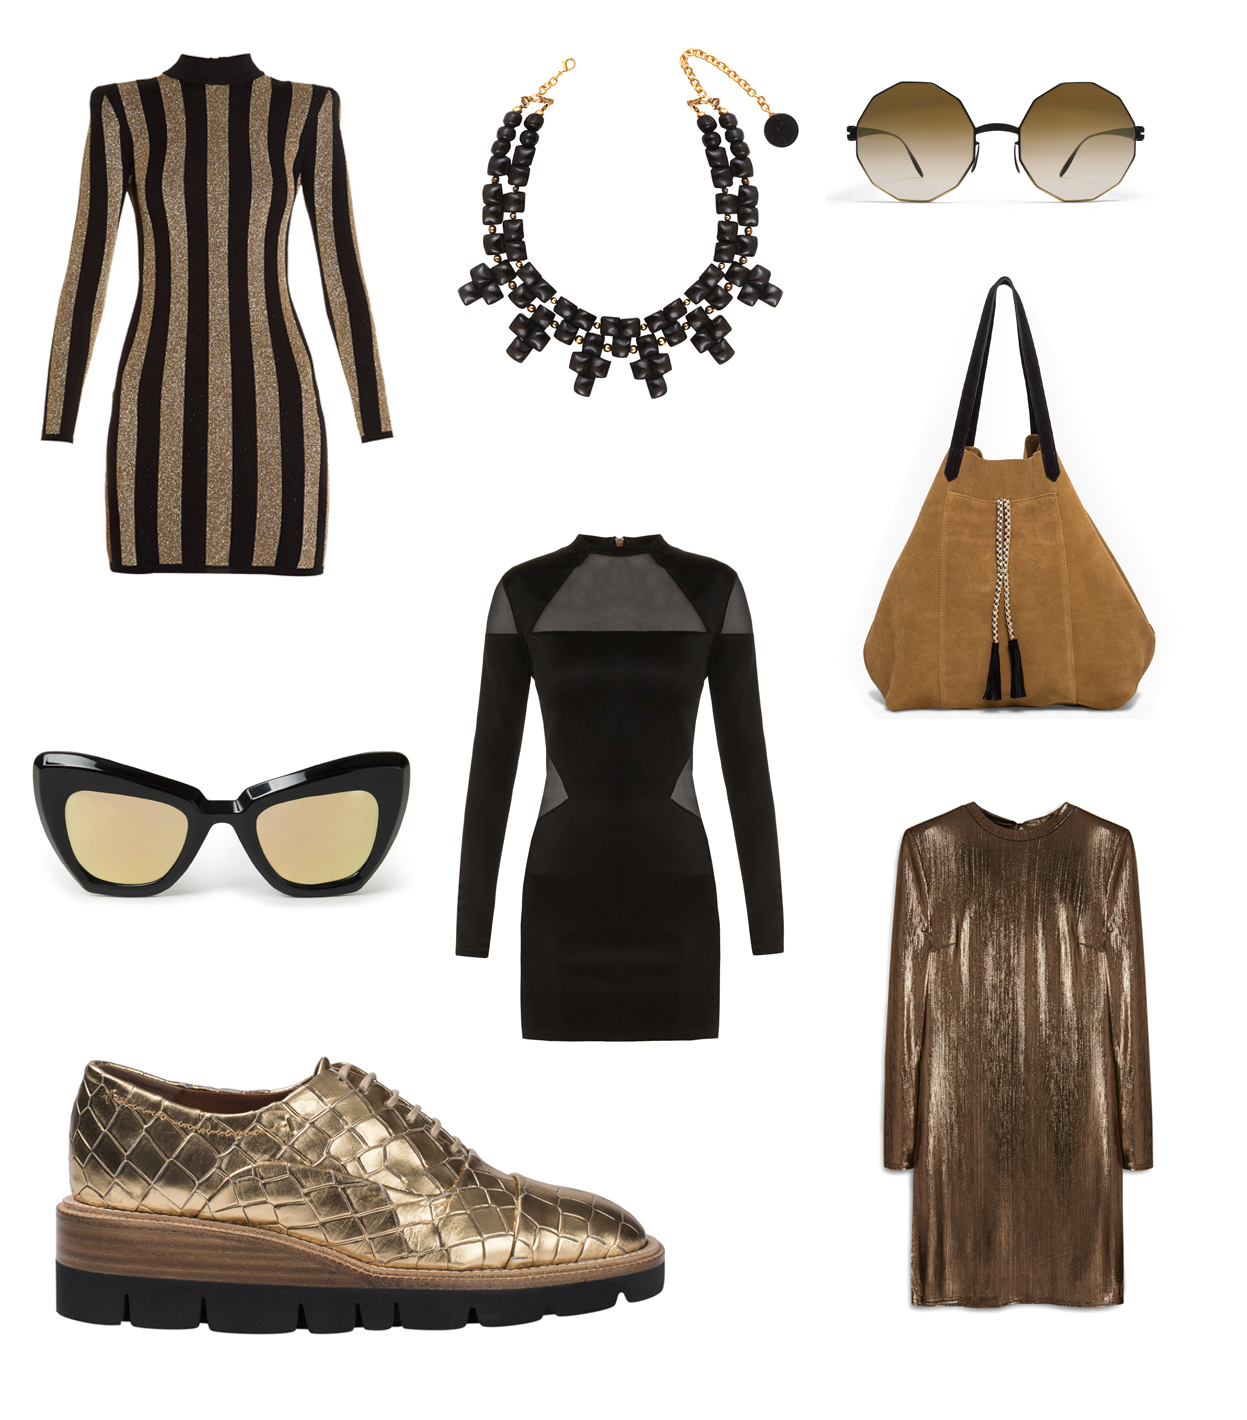 safari-chic-mode-fashion-gold-winter-graphic-etnic-african-copie